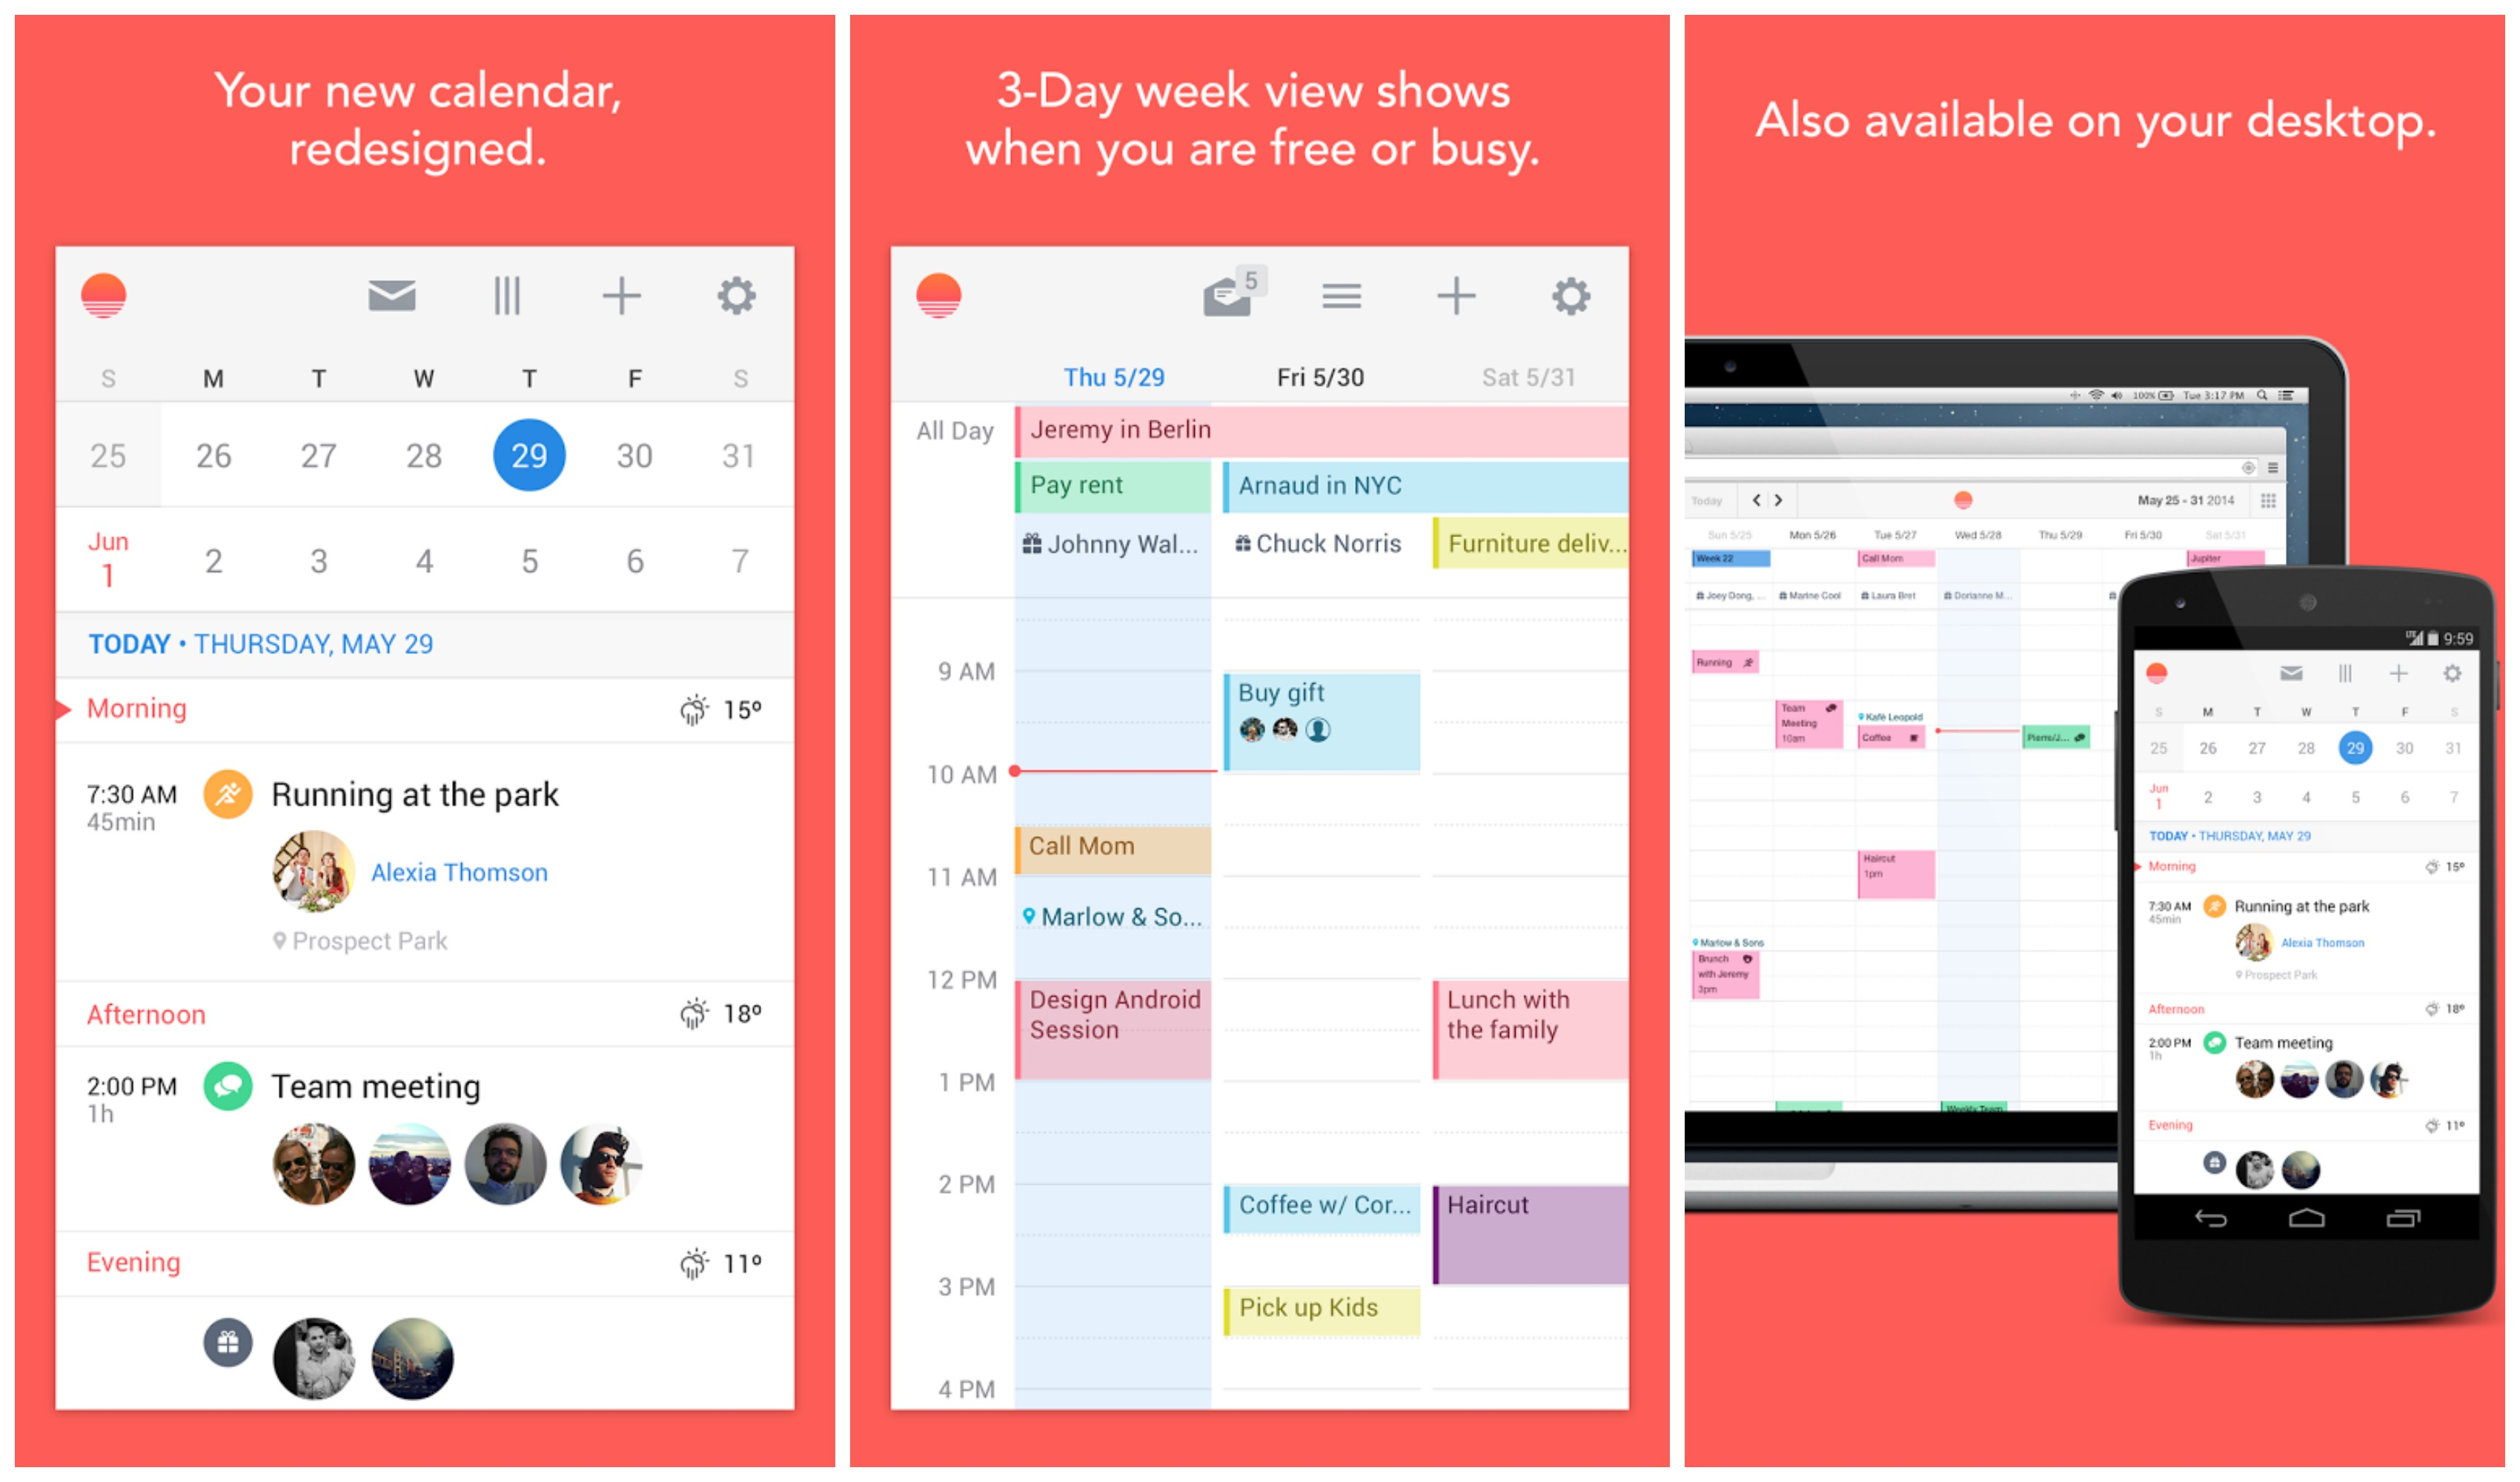 These are the 15 best calendar apps to help you organize a chaotic day